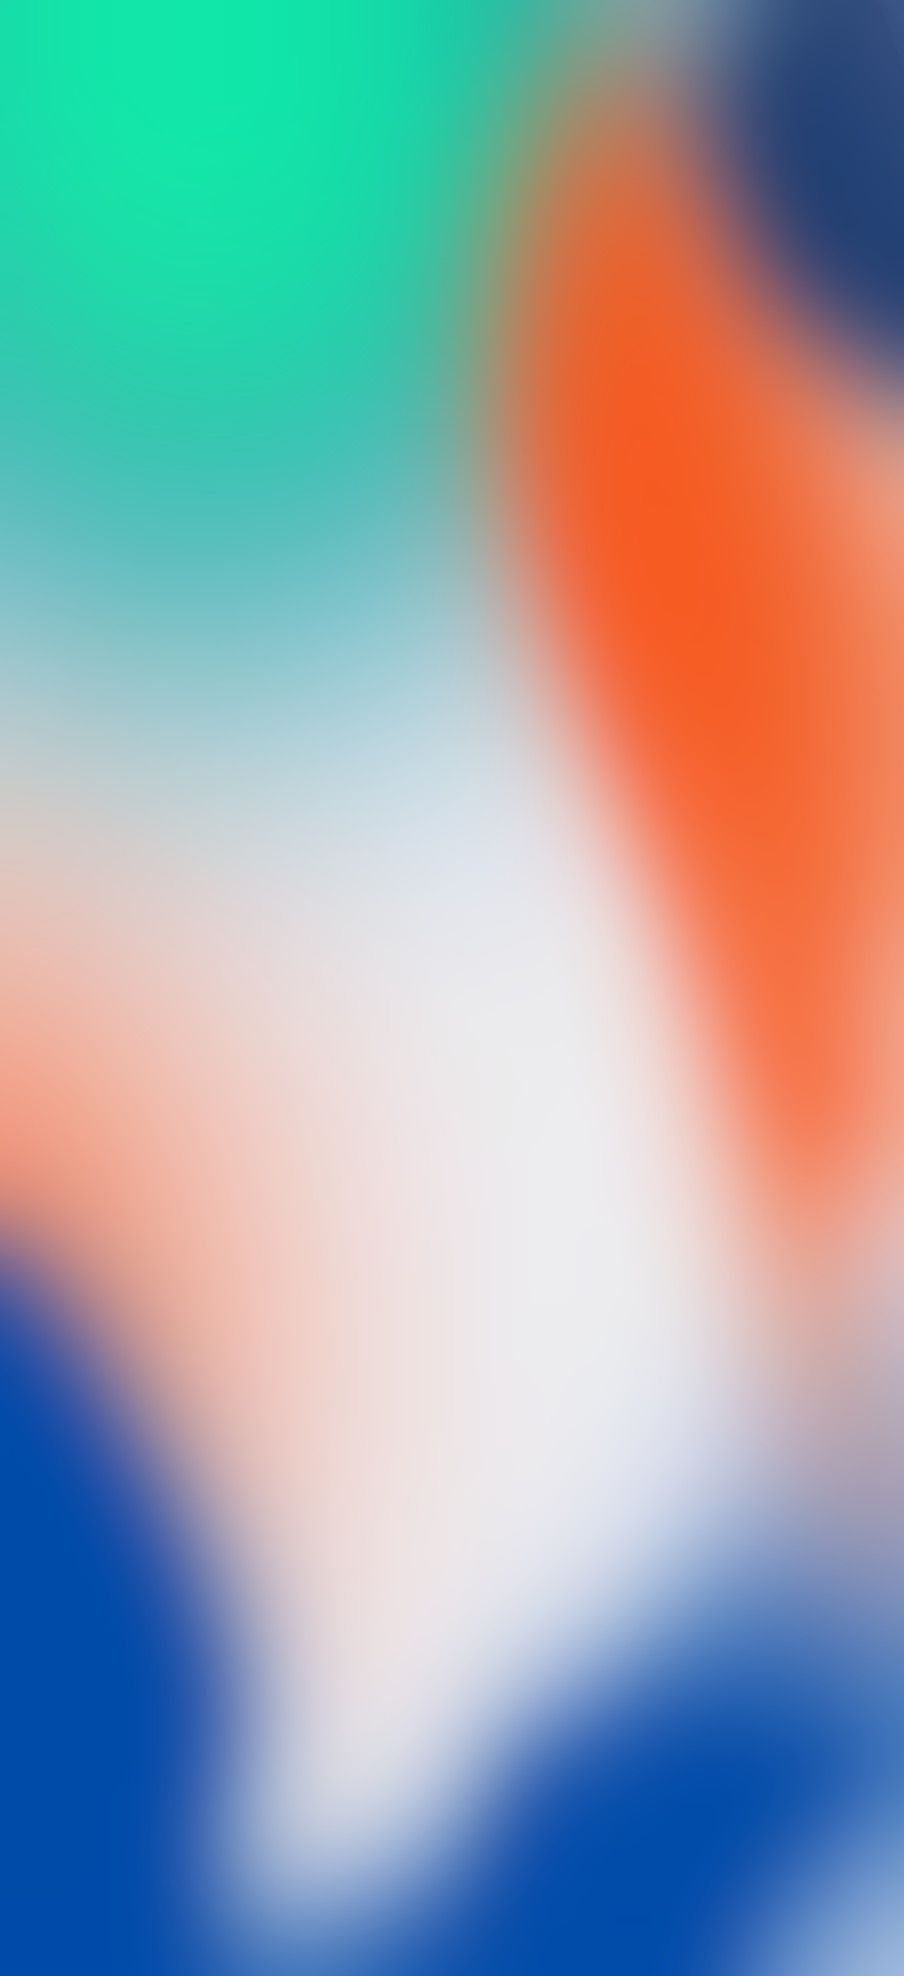 Ios 11 Iphone X Orange Green Blue Stock Abstract Apple Wallpaper Clean Bea Iphone Wallpaper Ios 11 Apple Wallpaper Iphone Iphone Homescreen Wallpaper